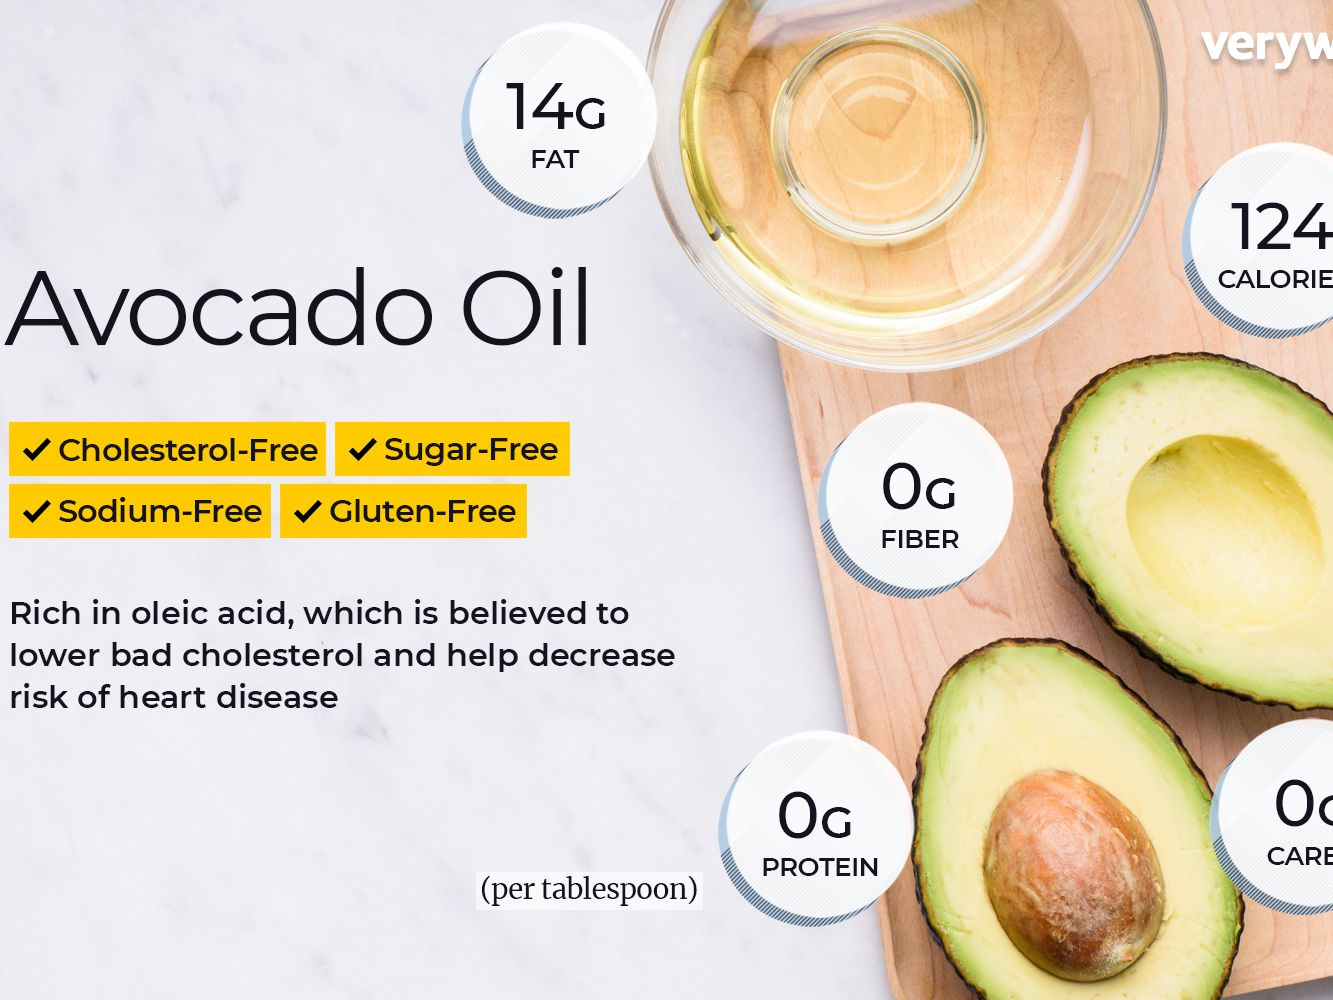 Avocado Oil Nutrition Facts: Calories, Carbs, and Health Benefits